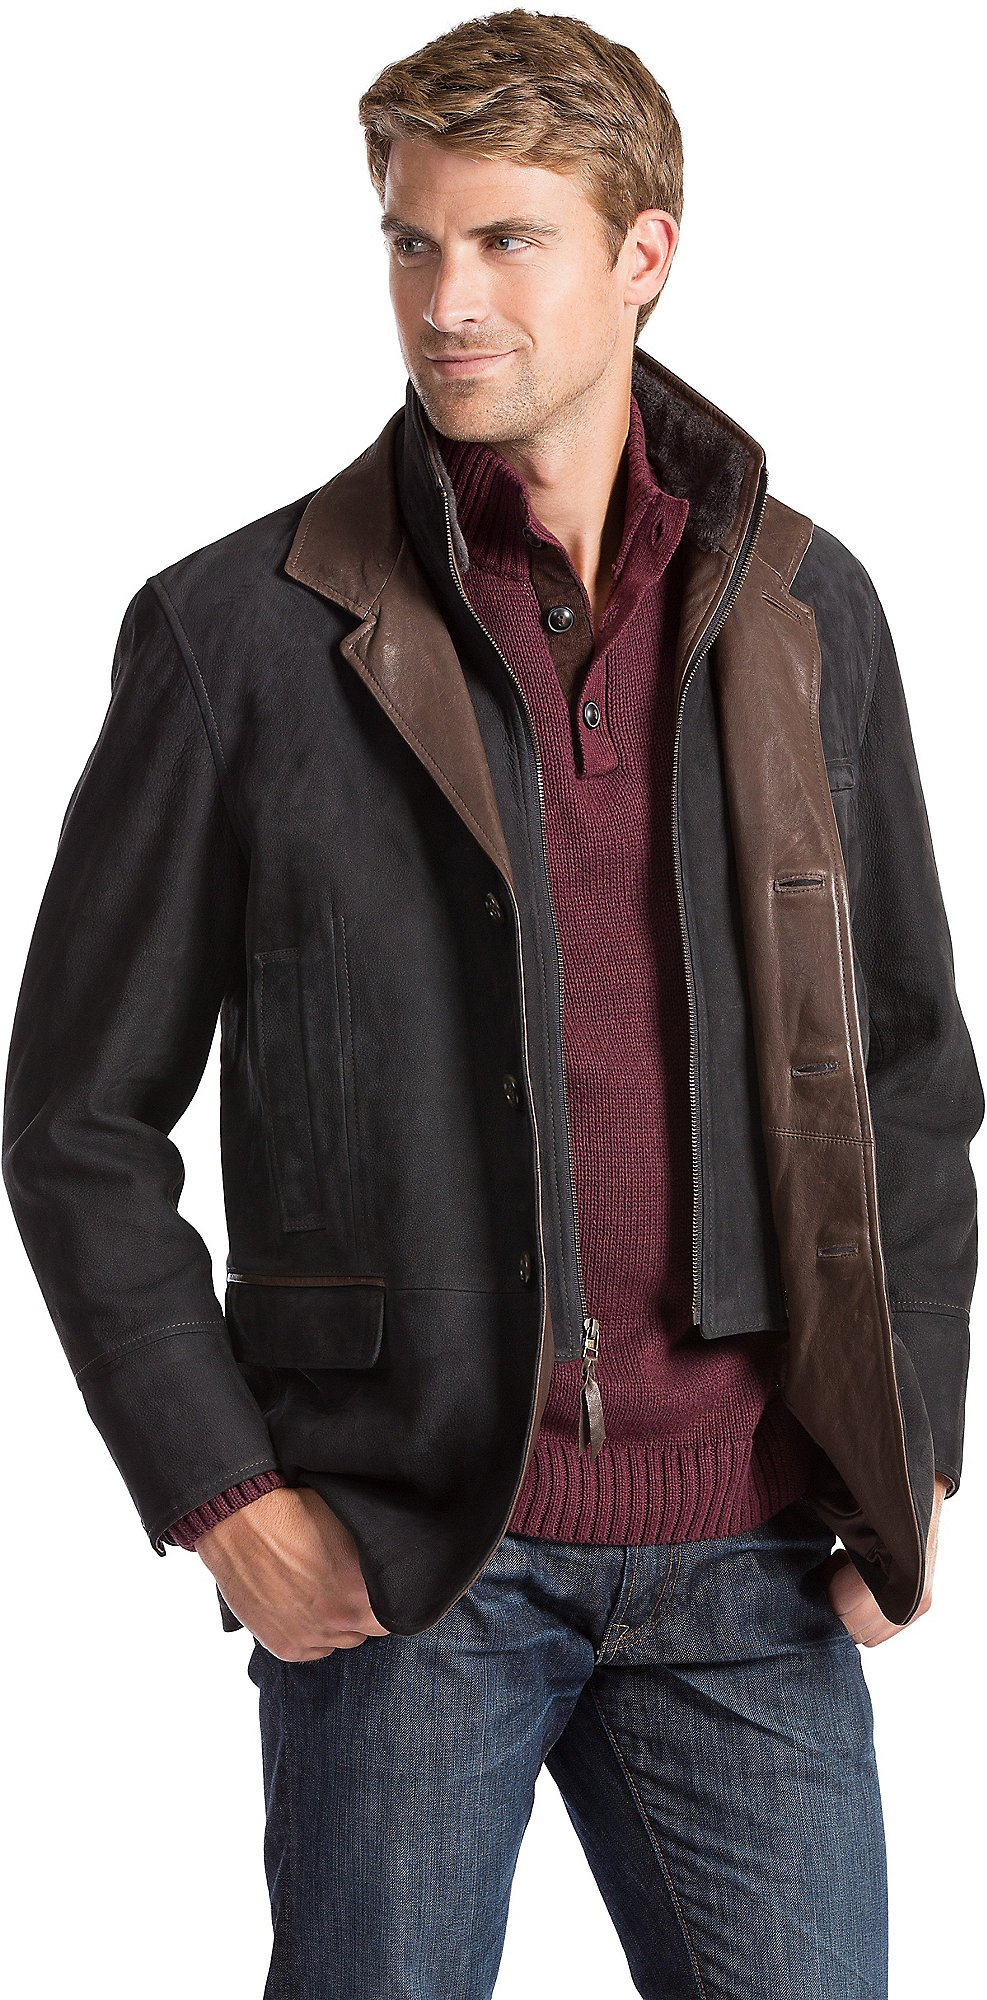 Carlsbad Calfskin Leather Blazer with Shearling Collar by Overland Sheepskin Co